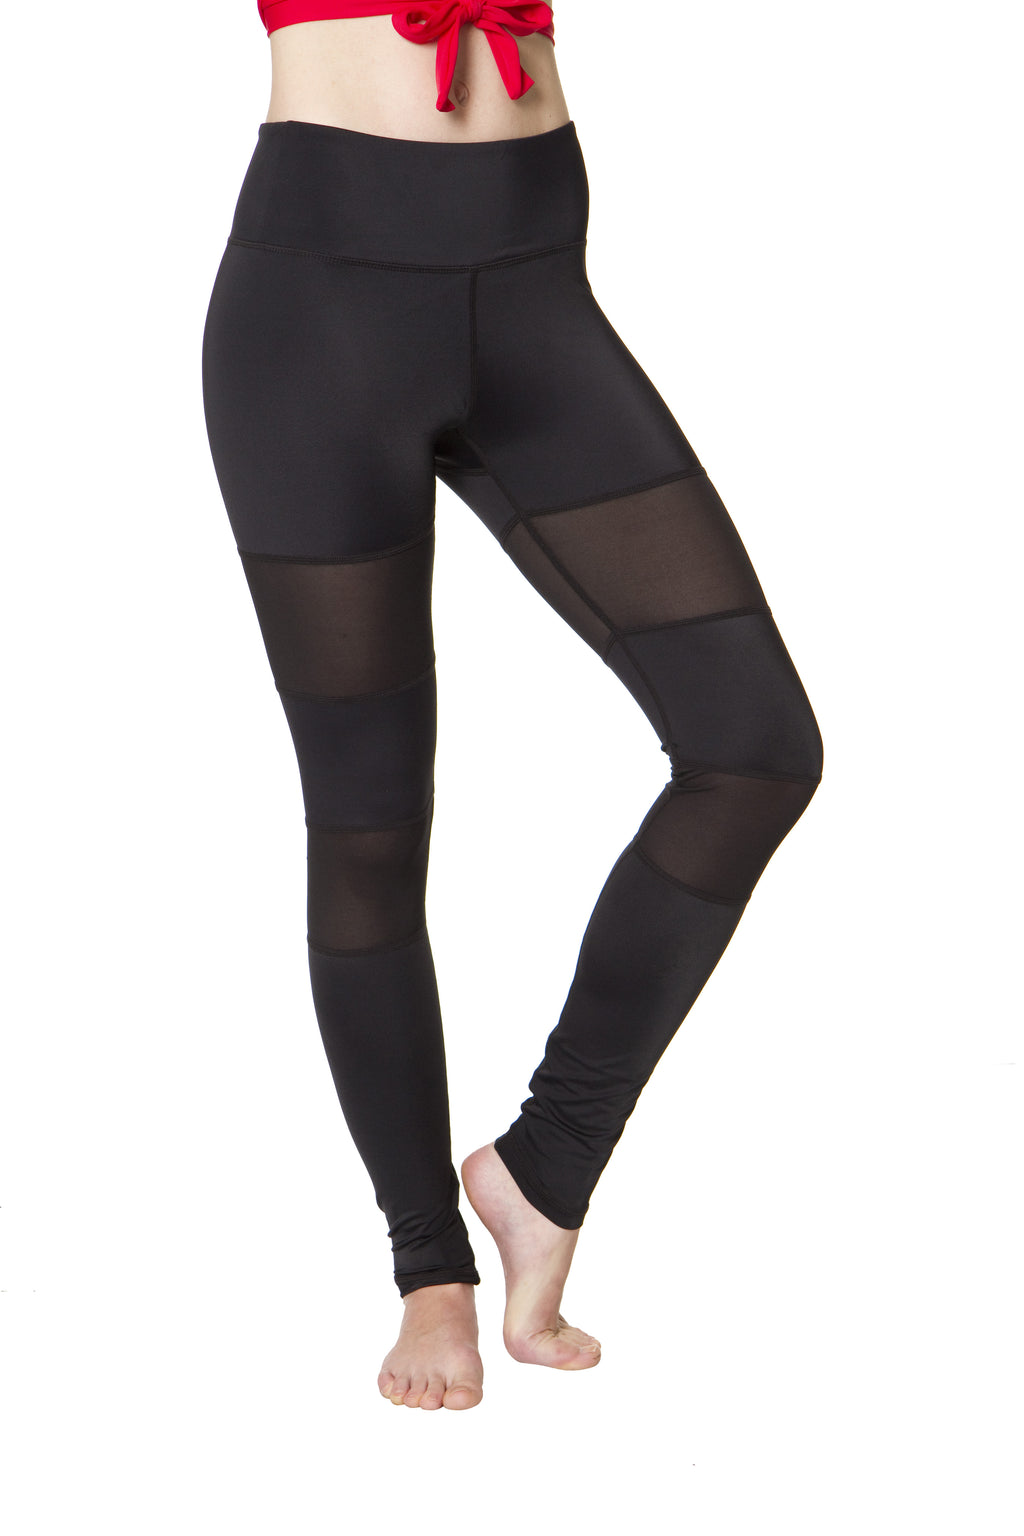 Black Peek-a-boo Flexi Yoga Leggings